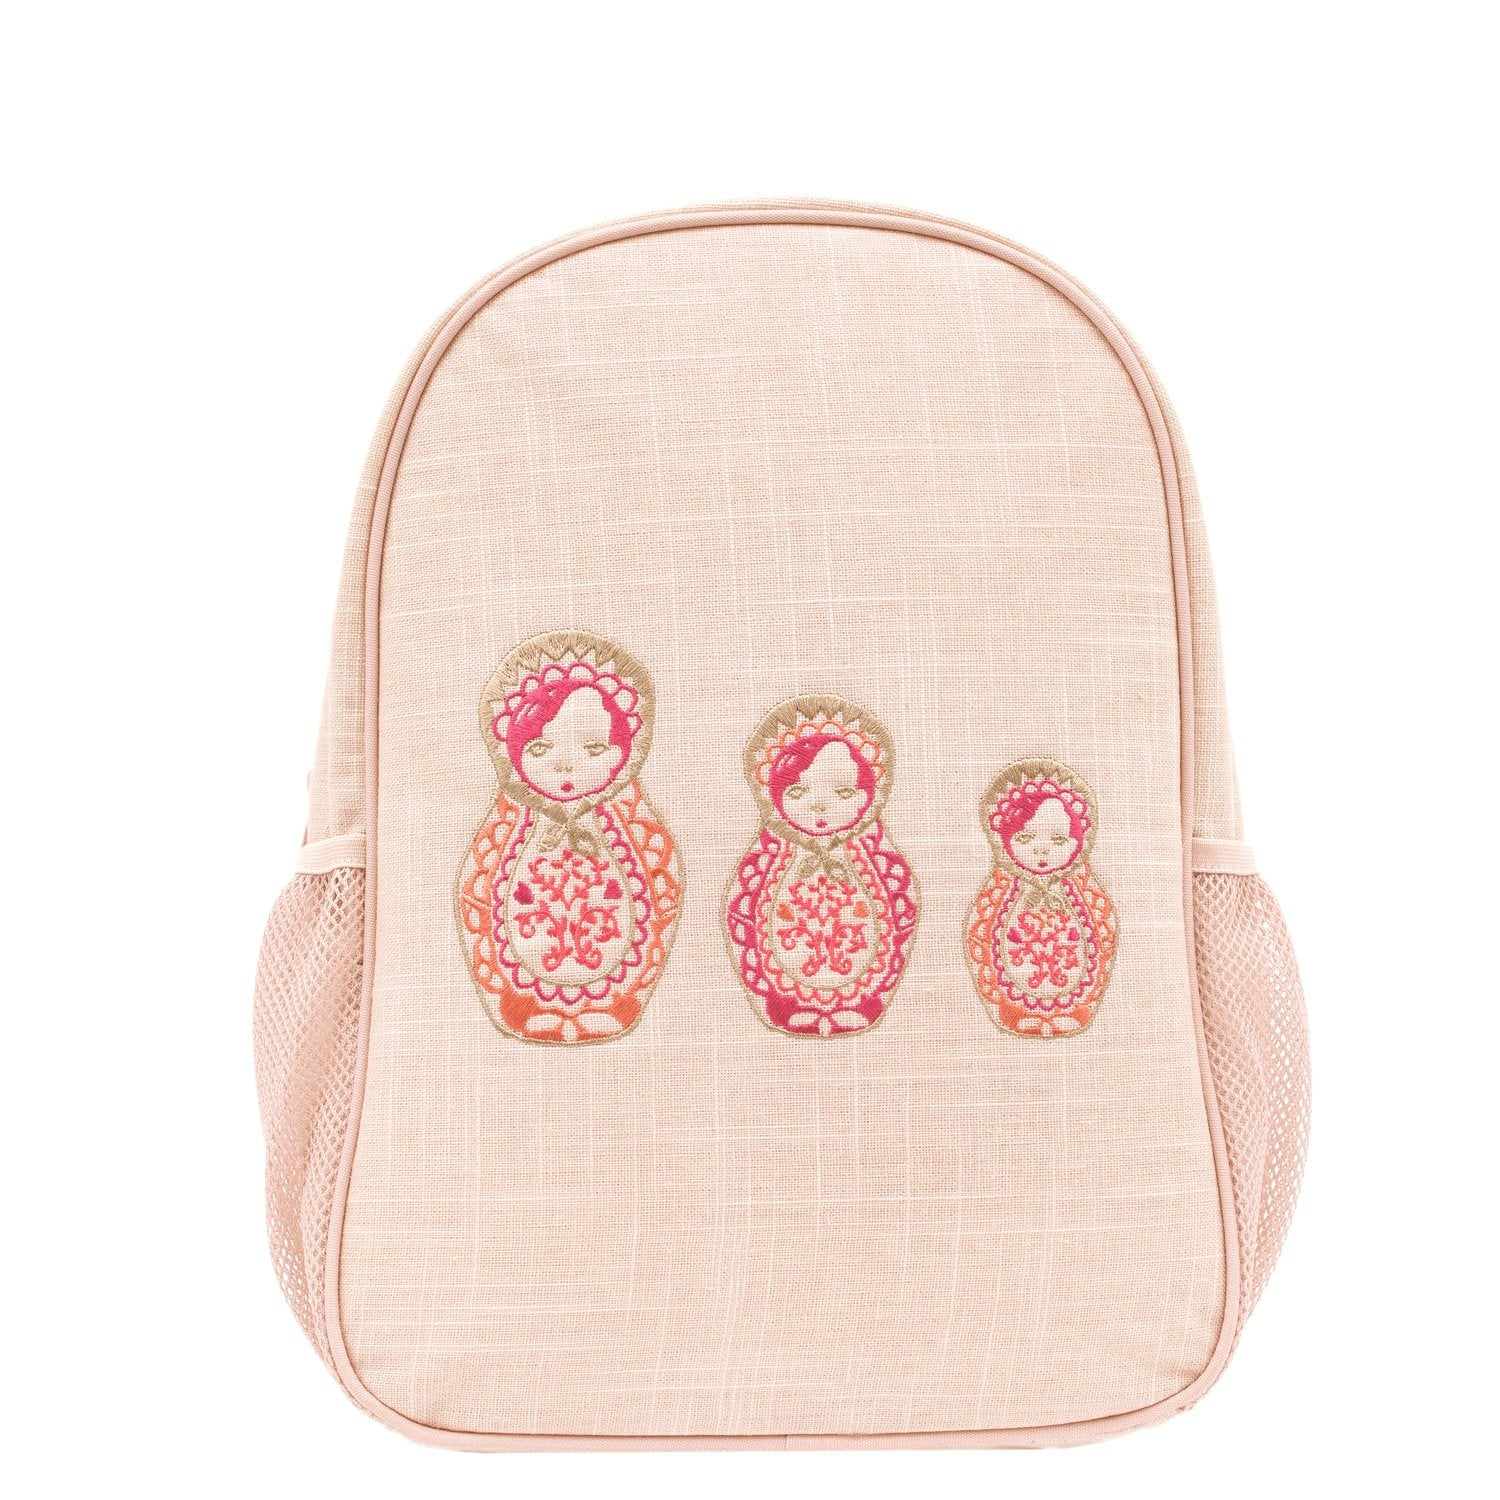 Embroidered Dolls Toddler Backpack